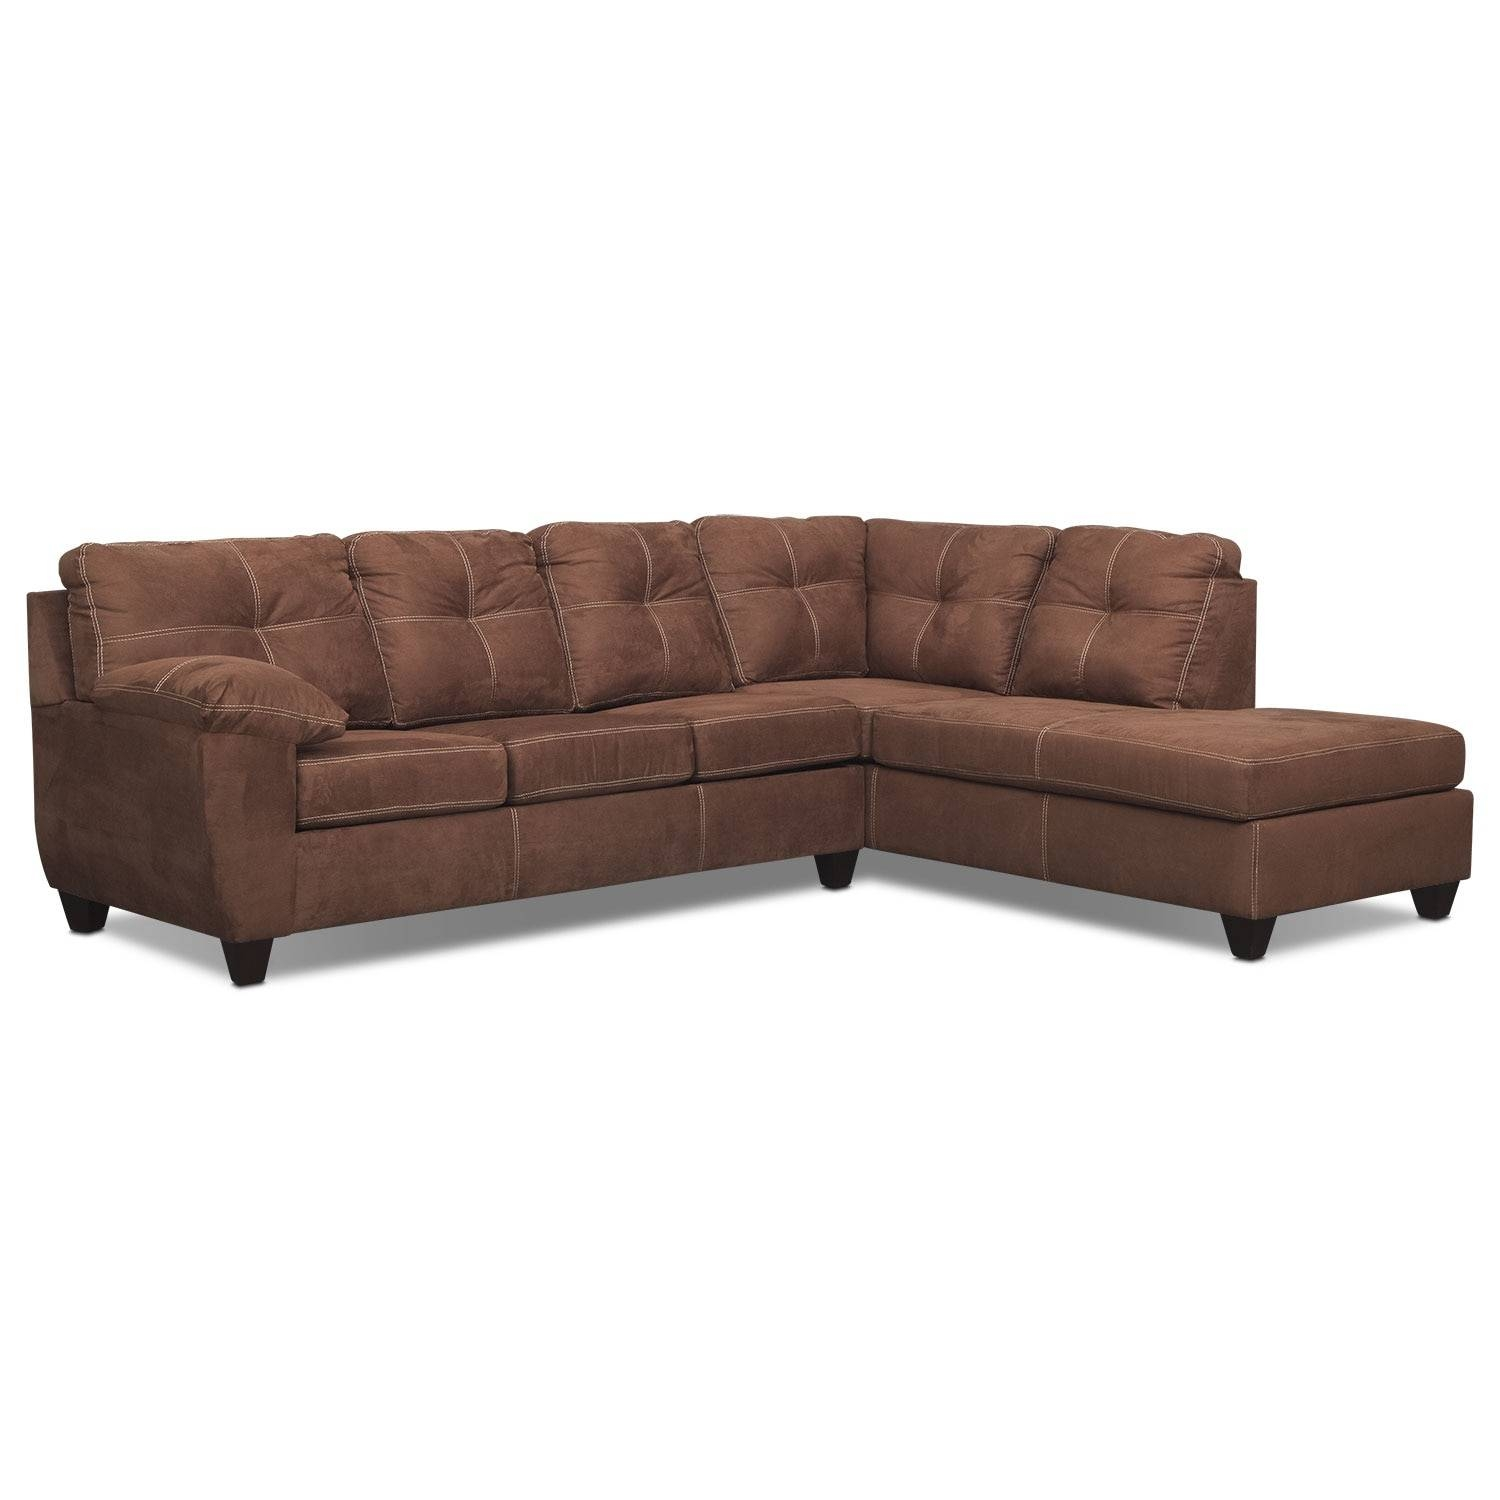 Sleeper Sofas | Value City Furniture | Value City Furniture With Regard To Sectional Sleeper Sofas With Chaise (View 18 of 30)